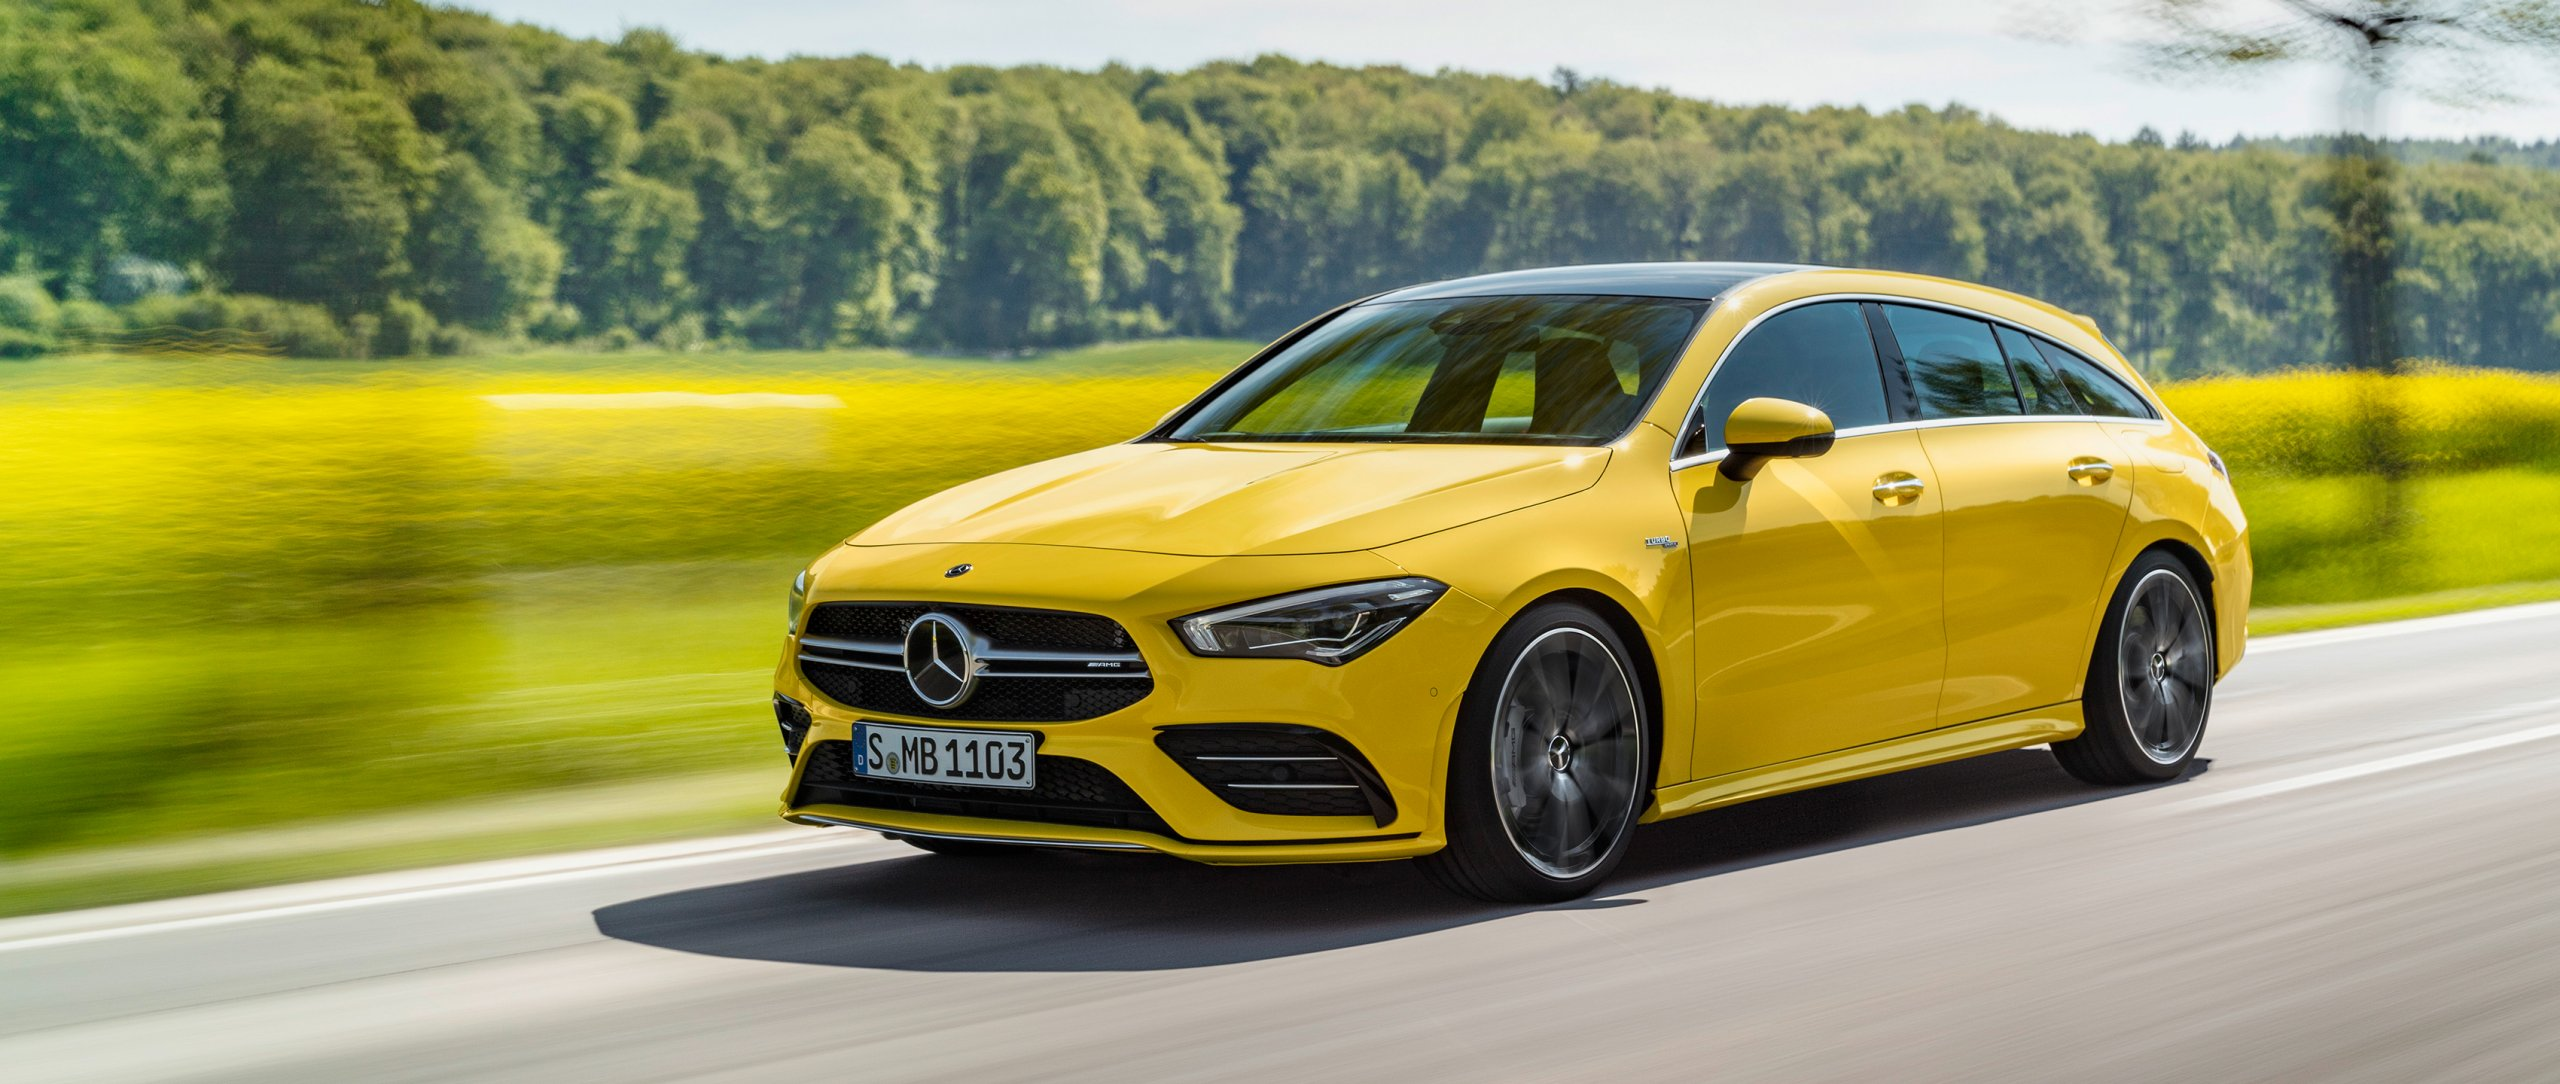 The new 2019 Mercedes-AMG CLA 35 4MATIC Shooting Brake (X 118) in sun yellow in side view on a country road.